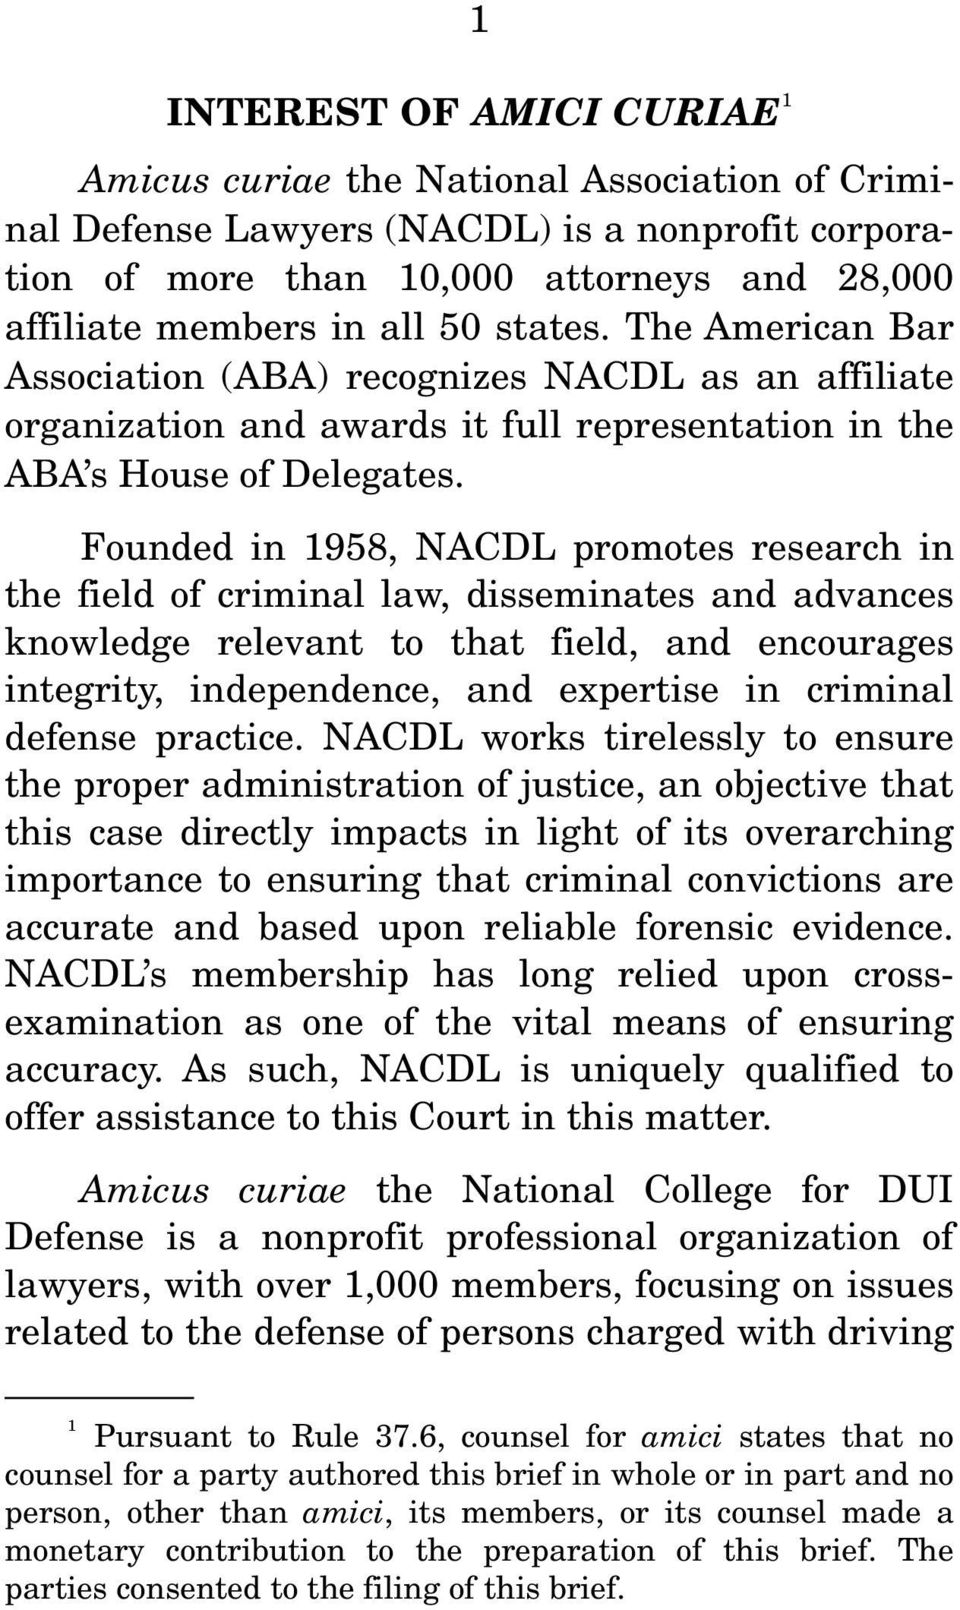 Founded in 1958, NACDL promotes research in the field of criminal law, disseminates and advances knowledge relevant to that field, and encourages integrity, independence, and expertise in criminal